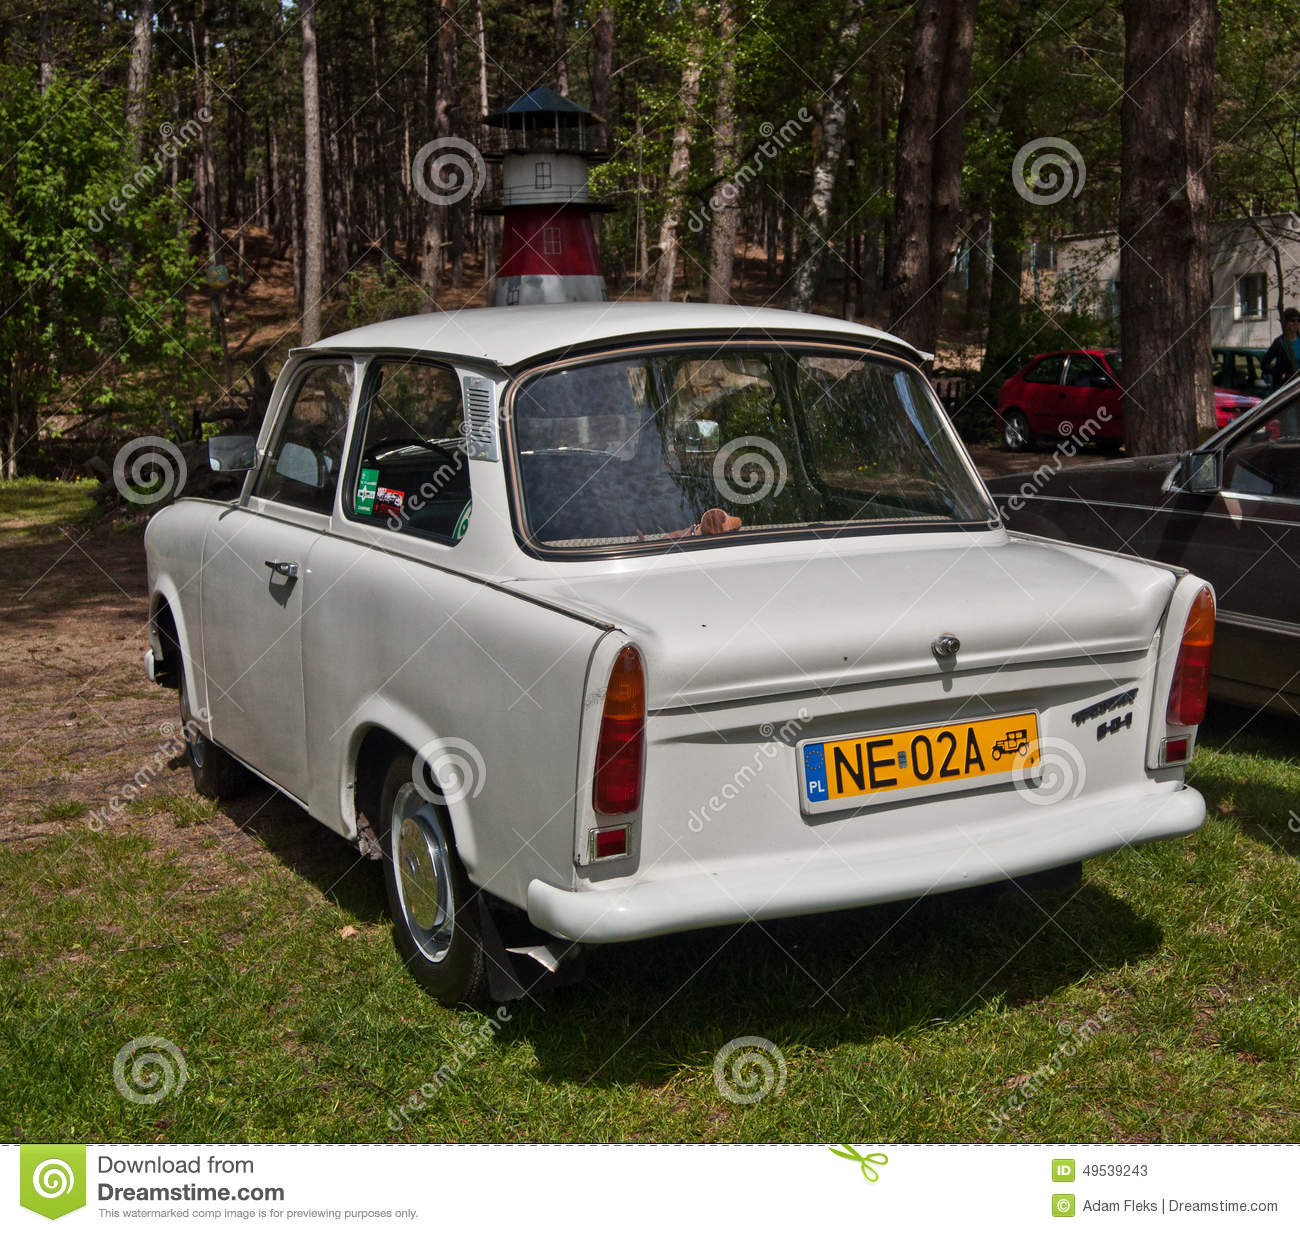 Trabant Clipart Vintage Car Trabant 501 Parked Editorial Stock Photo Image Of